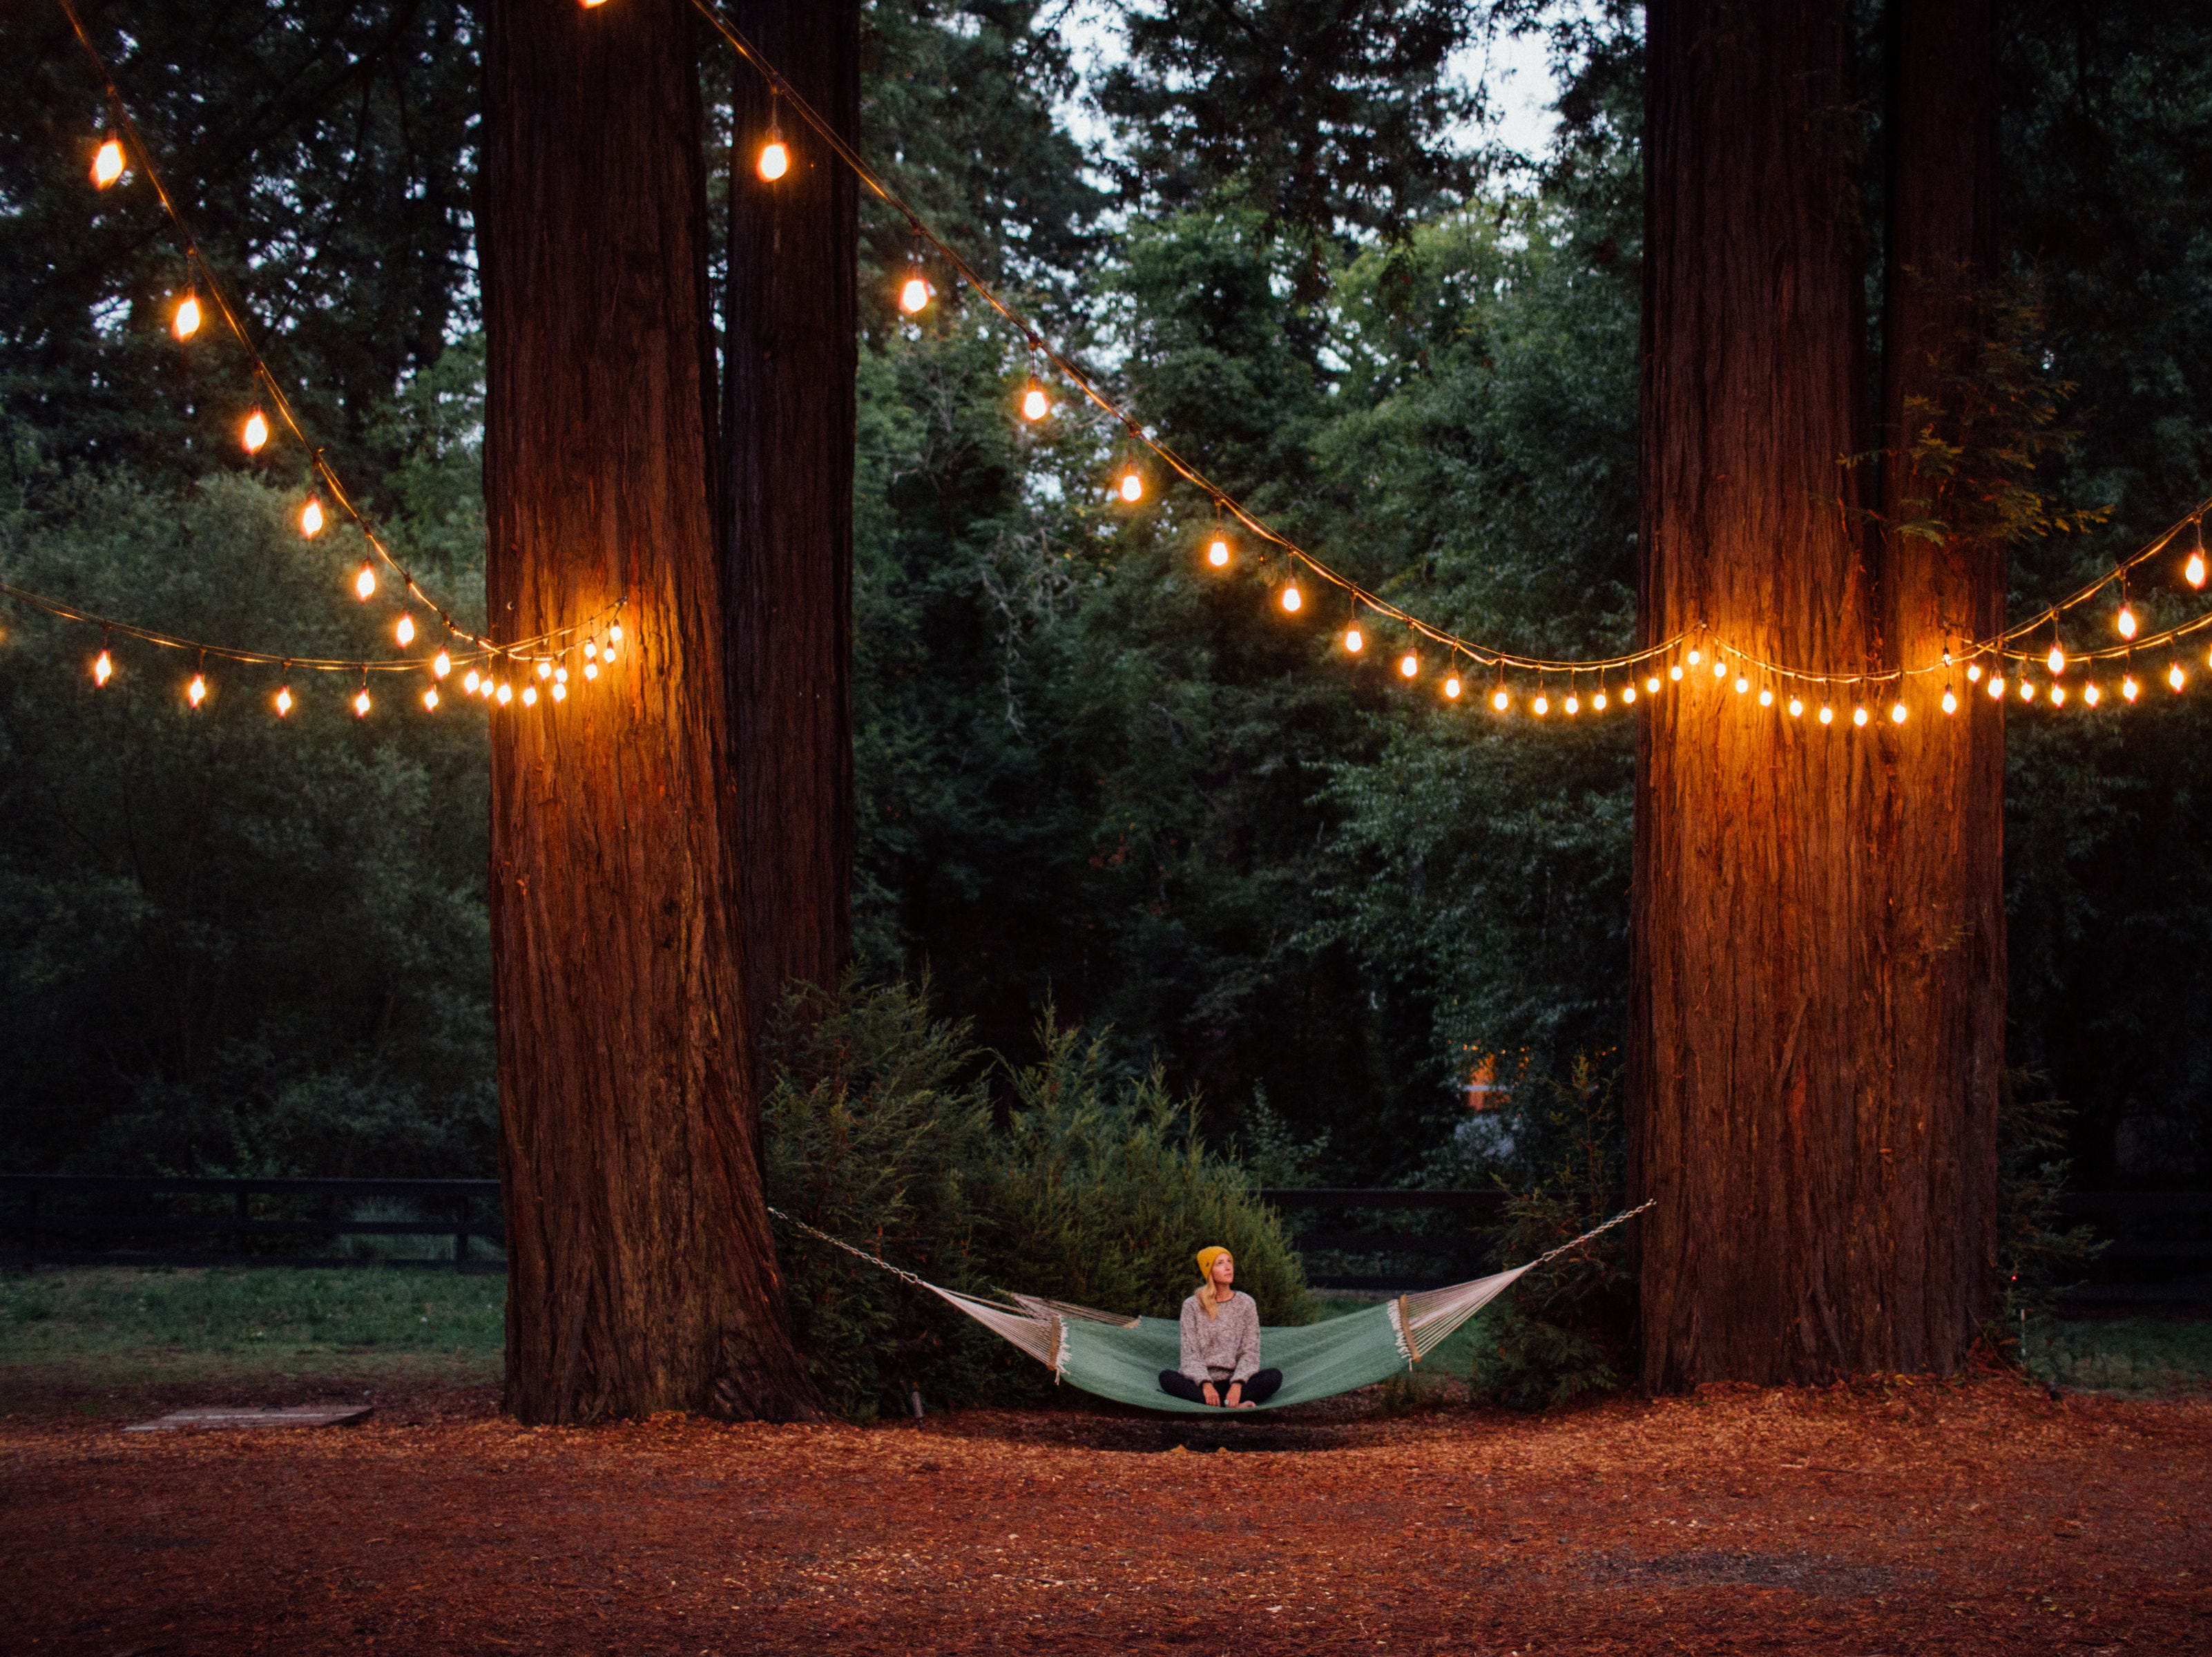 AutoCamp has already opened a location in Sonoma County.